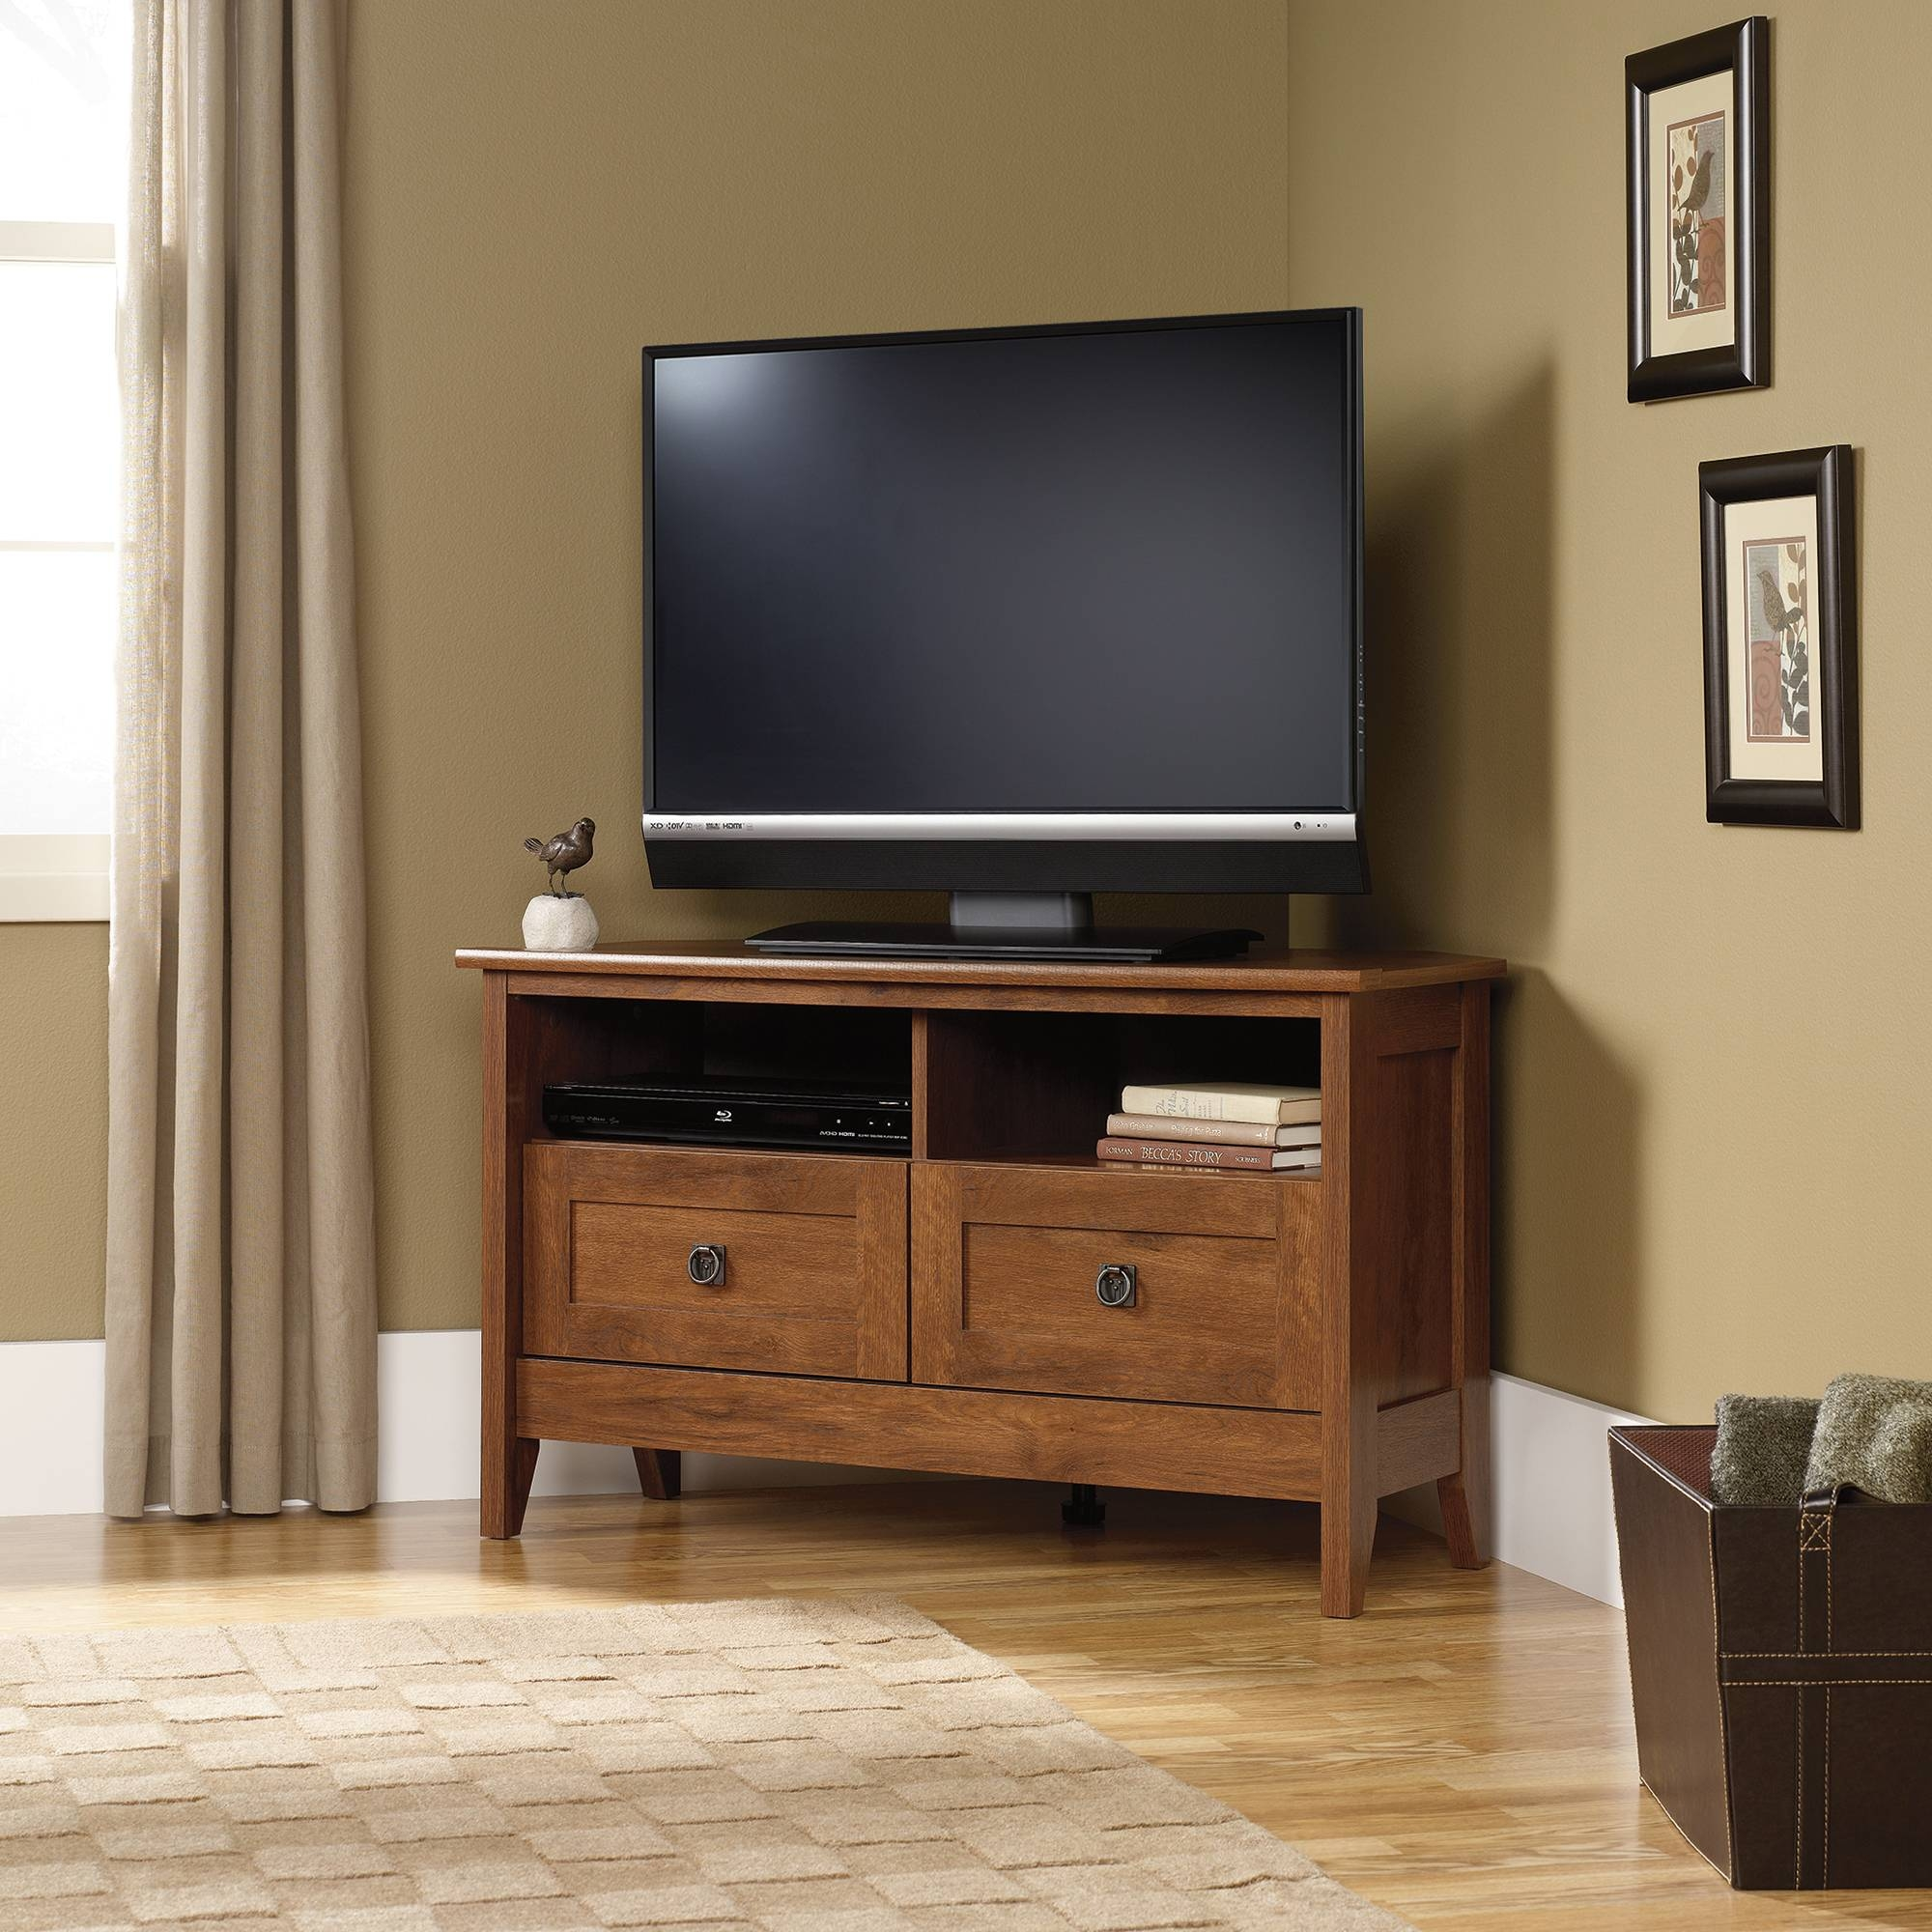 Sauder Select | Corner Tv Stand | 410627 | Sauder Inside Tv Stands For Corner (View 7 of 15)